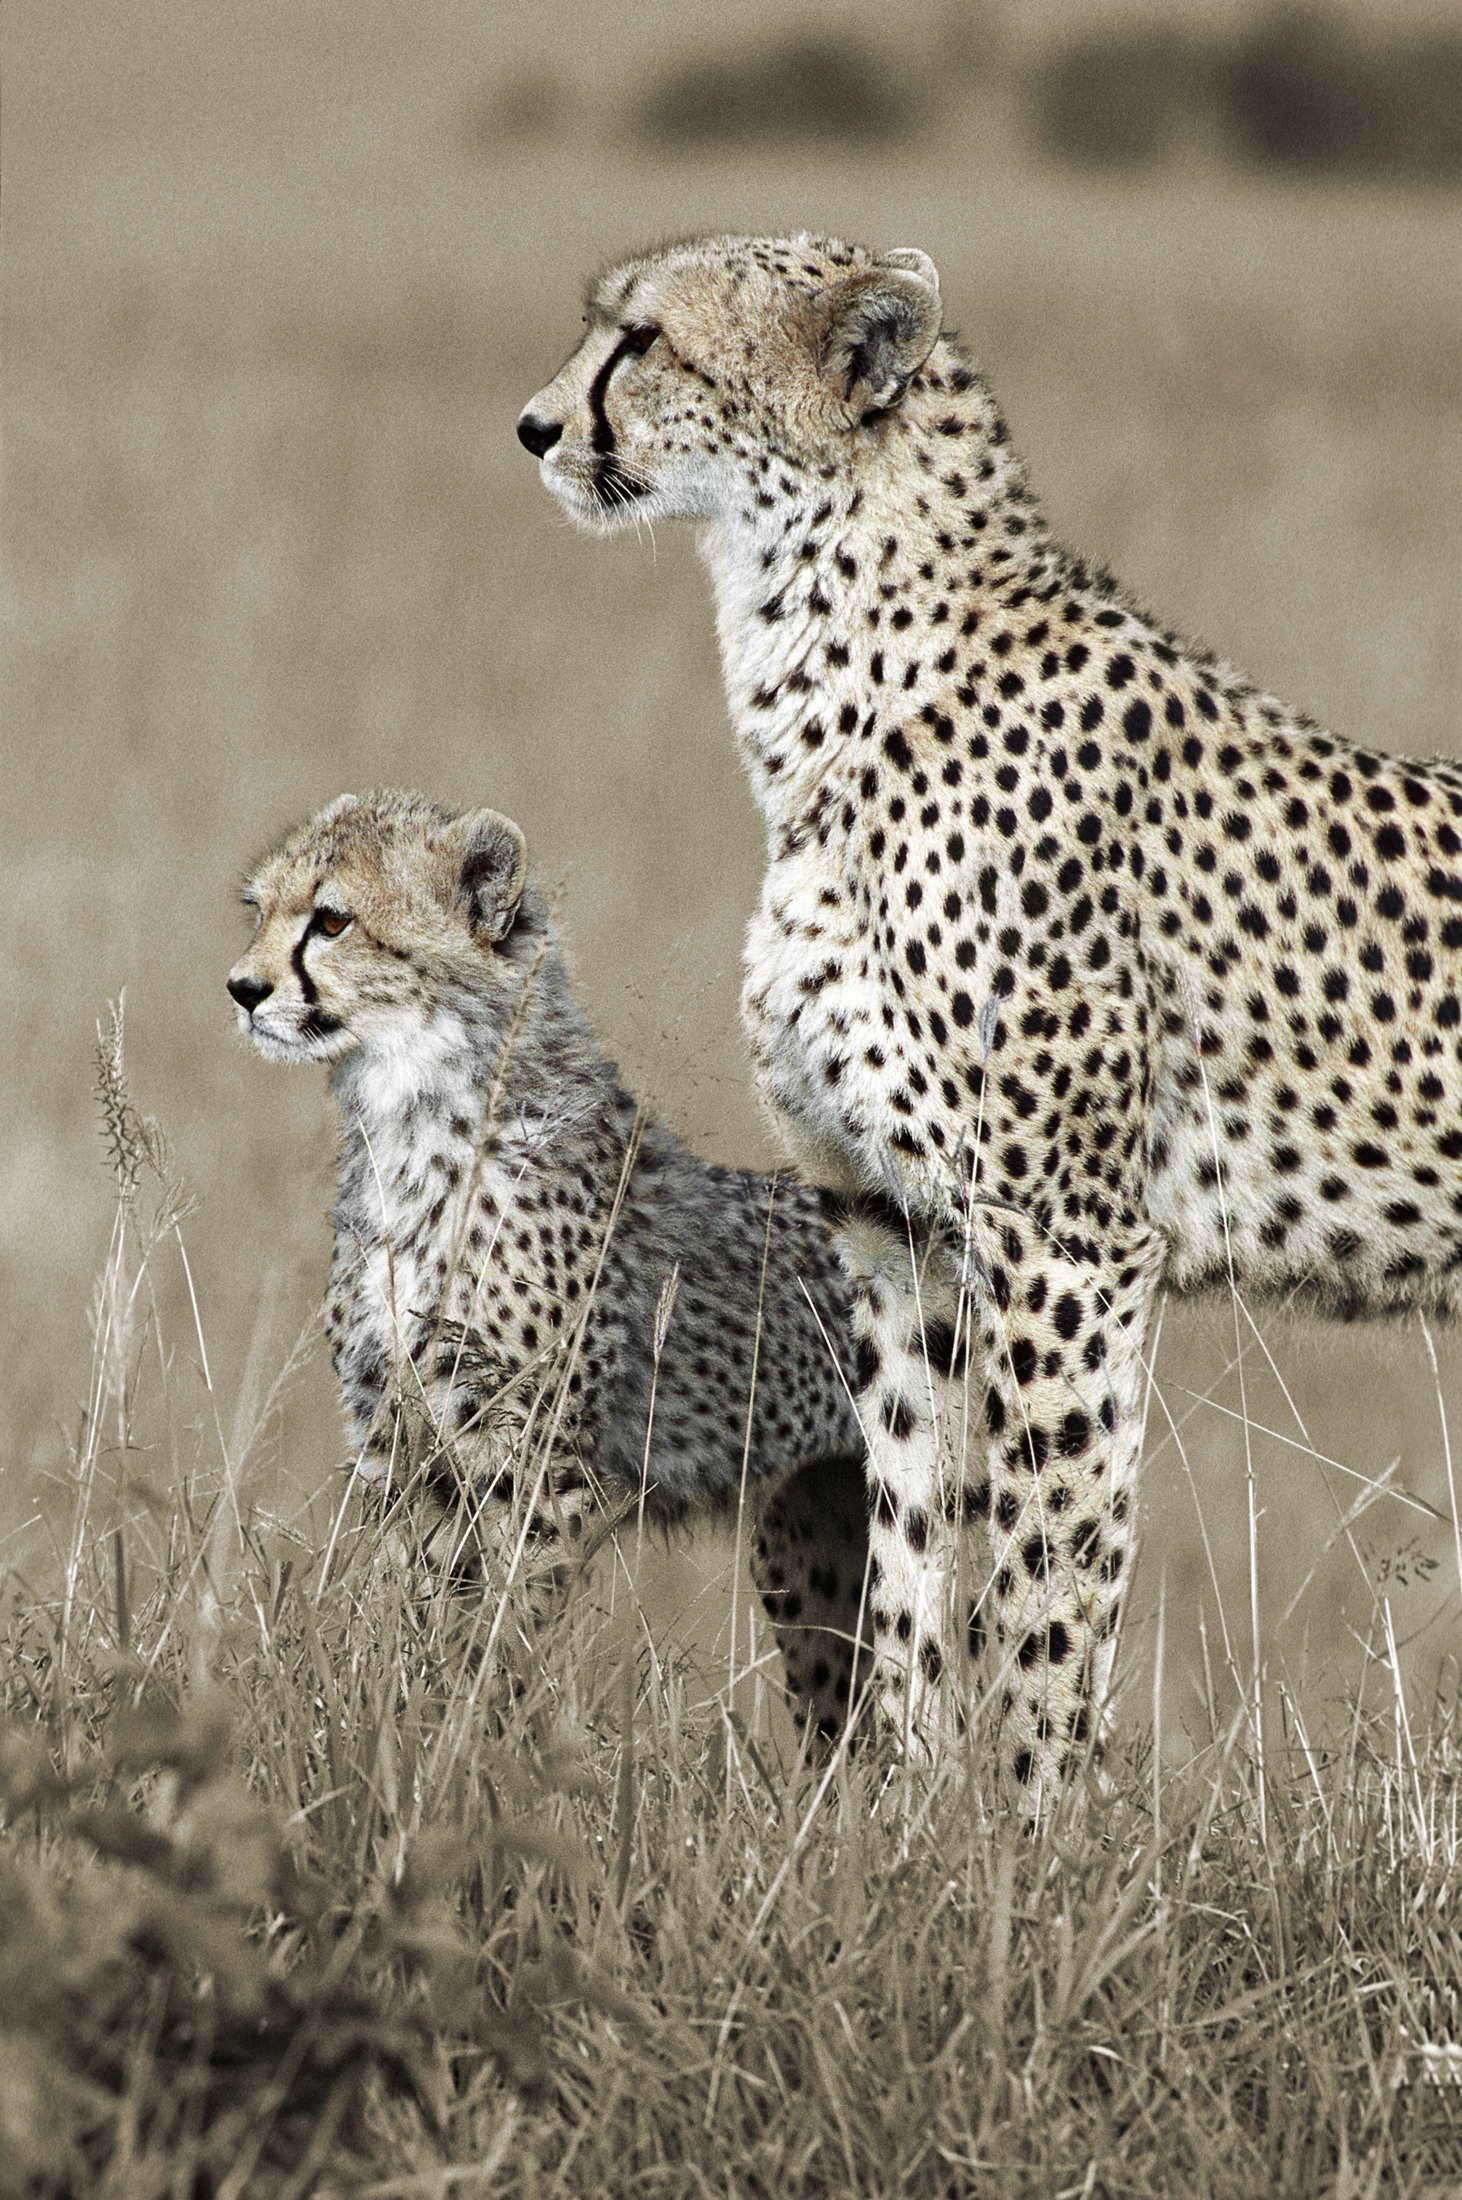 Two Cheetah by Mary Ratner